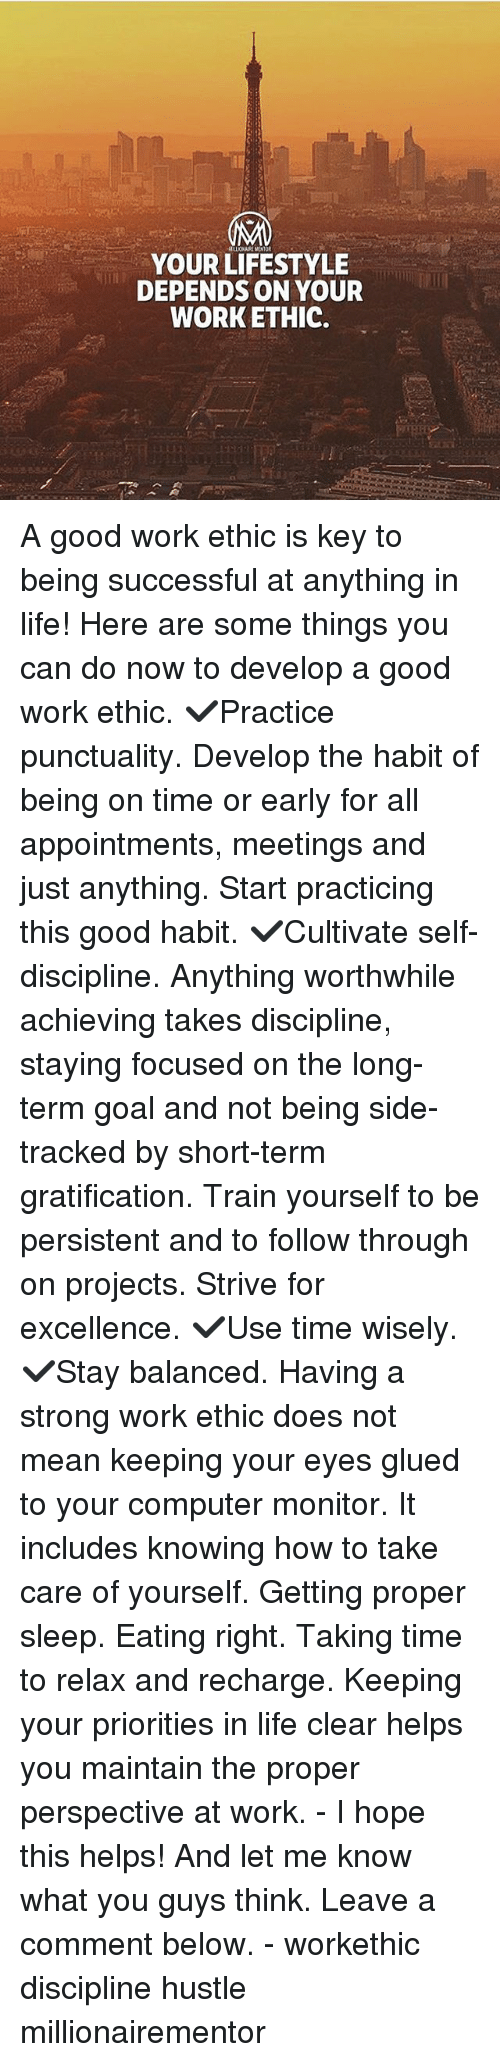 worthwhile: YOUR LIFESTYLE  DEPENDS ON YOUR  WORKETHIC. A good work ethic is key to being successful at anything in life! Here are some things you can do now to develop a good work ethic. ✔️Practice punctuality. Develop the habit of being on time or early for all appointments, meetings and just anything. Start practicing this good habit. ✔️Cultivate self-discipline. Anything worthwhile achieving takes discipline, staying focused on the long-term goal and not being side-tracked by short-term gratification. Train yourself to be persistent and to follow through on projects. Strive for excellence. ✔️Use time wisely. ✔️Stay balanced. Having a strong work ethic does not mean keeping your eyes glued to your computer monitor. It includes knowing how to take care of yourself. Getting proper sleep. Eating right. Taking time to relax and recharge. Keeping your priorities in life clear helps you maintain the proper perspective at work. - I hope this helps! And let me know what you guys think. Leave a comment below. - workethic discipline hustle millionairementor